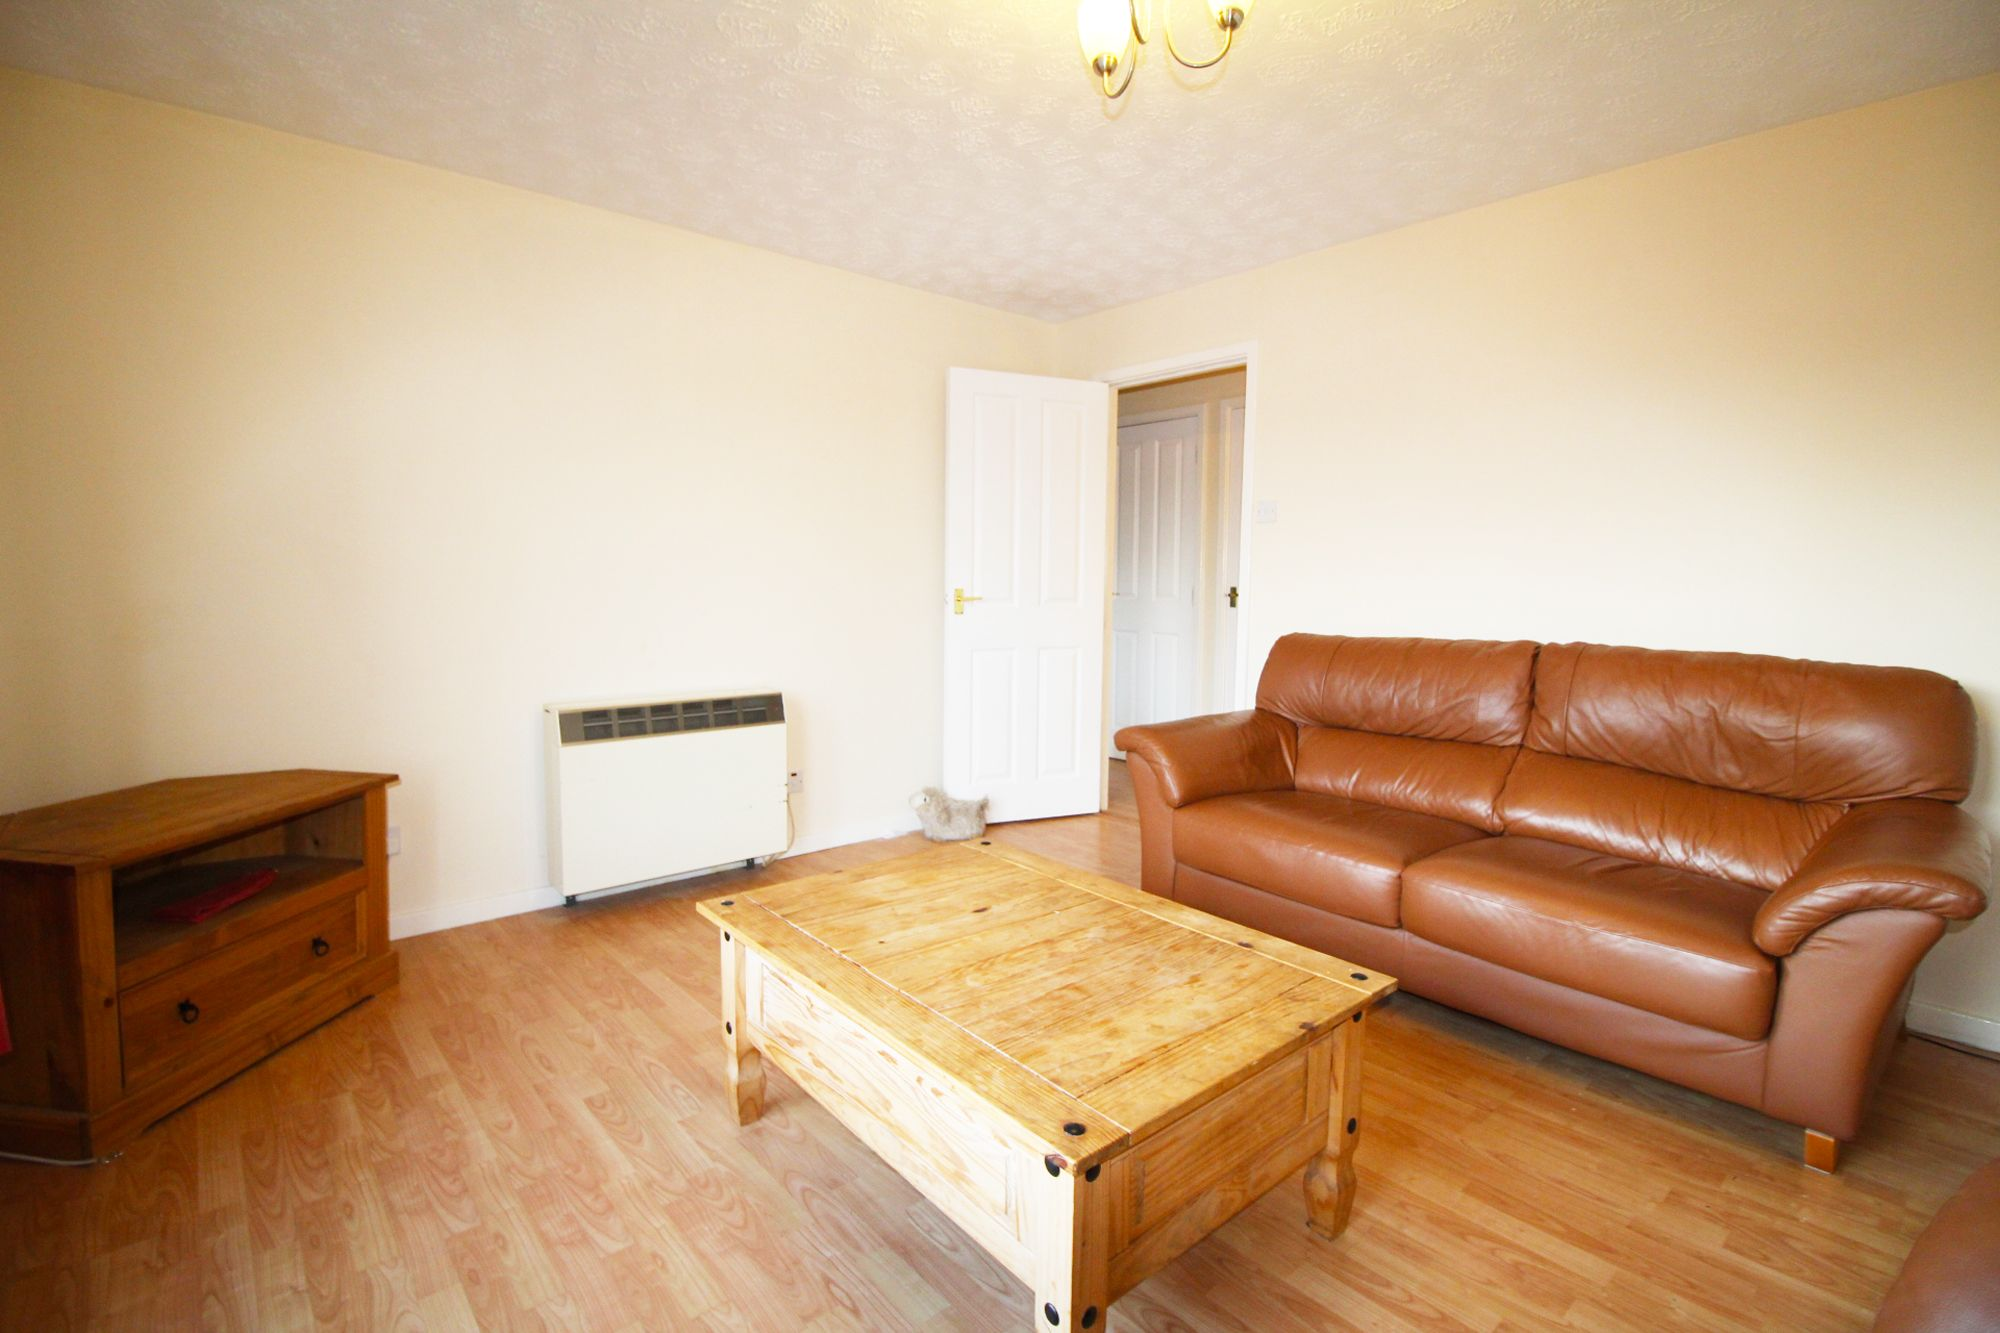 Interior design for double bedroom flat property to rent in aberdeen city centre u castle terrace